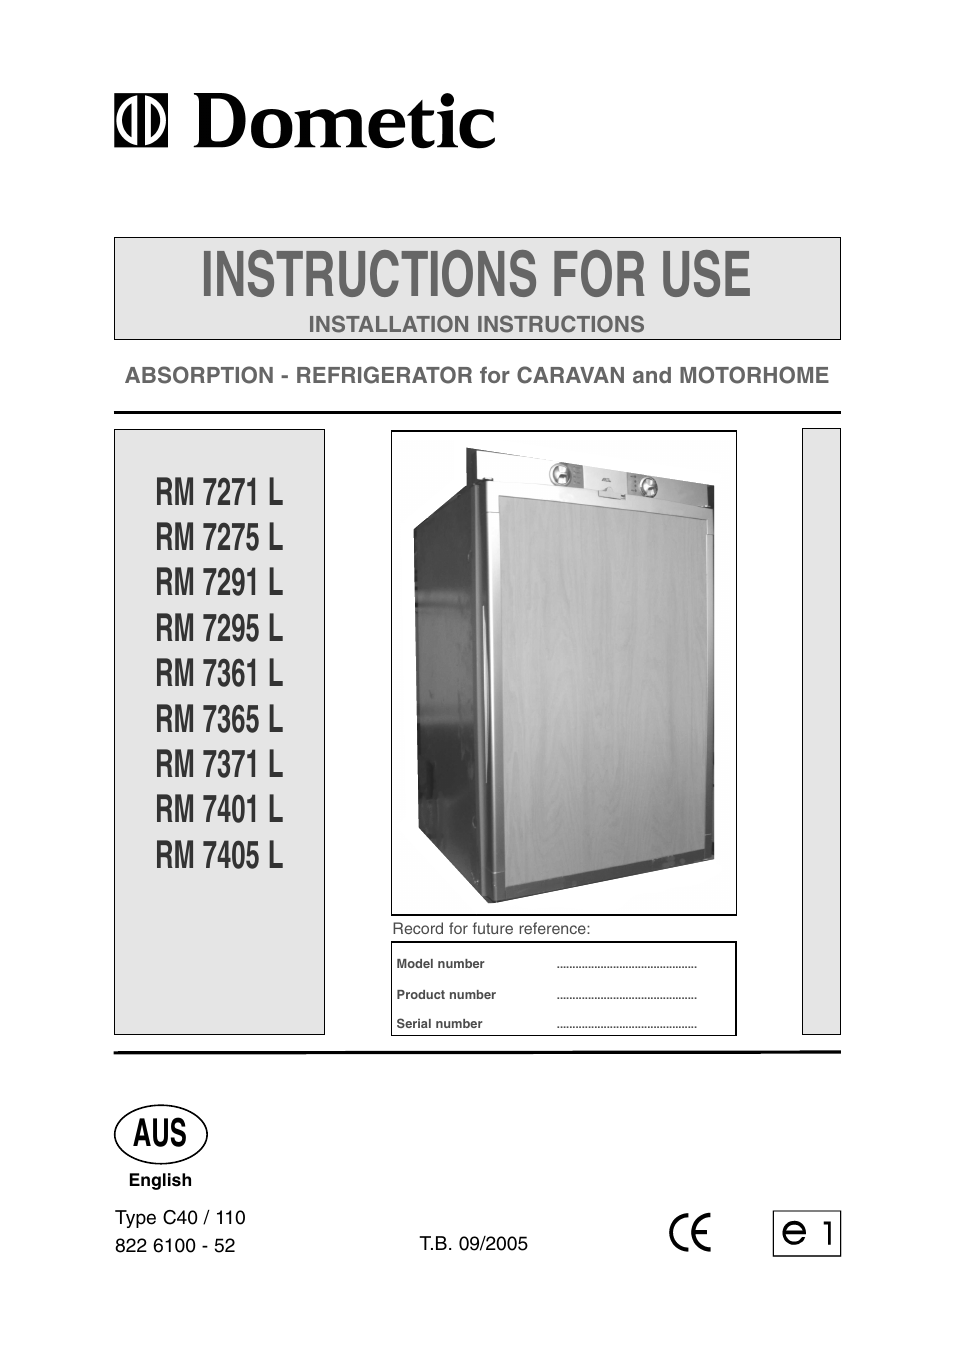 dometic rm 7361 l user manual 28 pages also for rm 7371 l rh manualsdir com dometic fridge user manual Dometic Refrigerator Manuals RC 4000